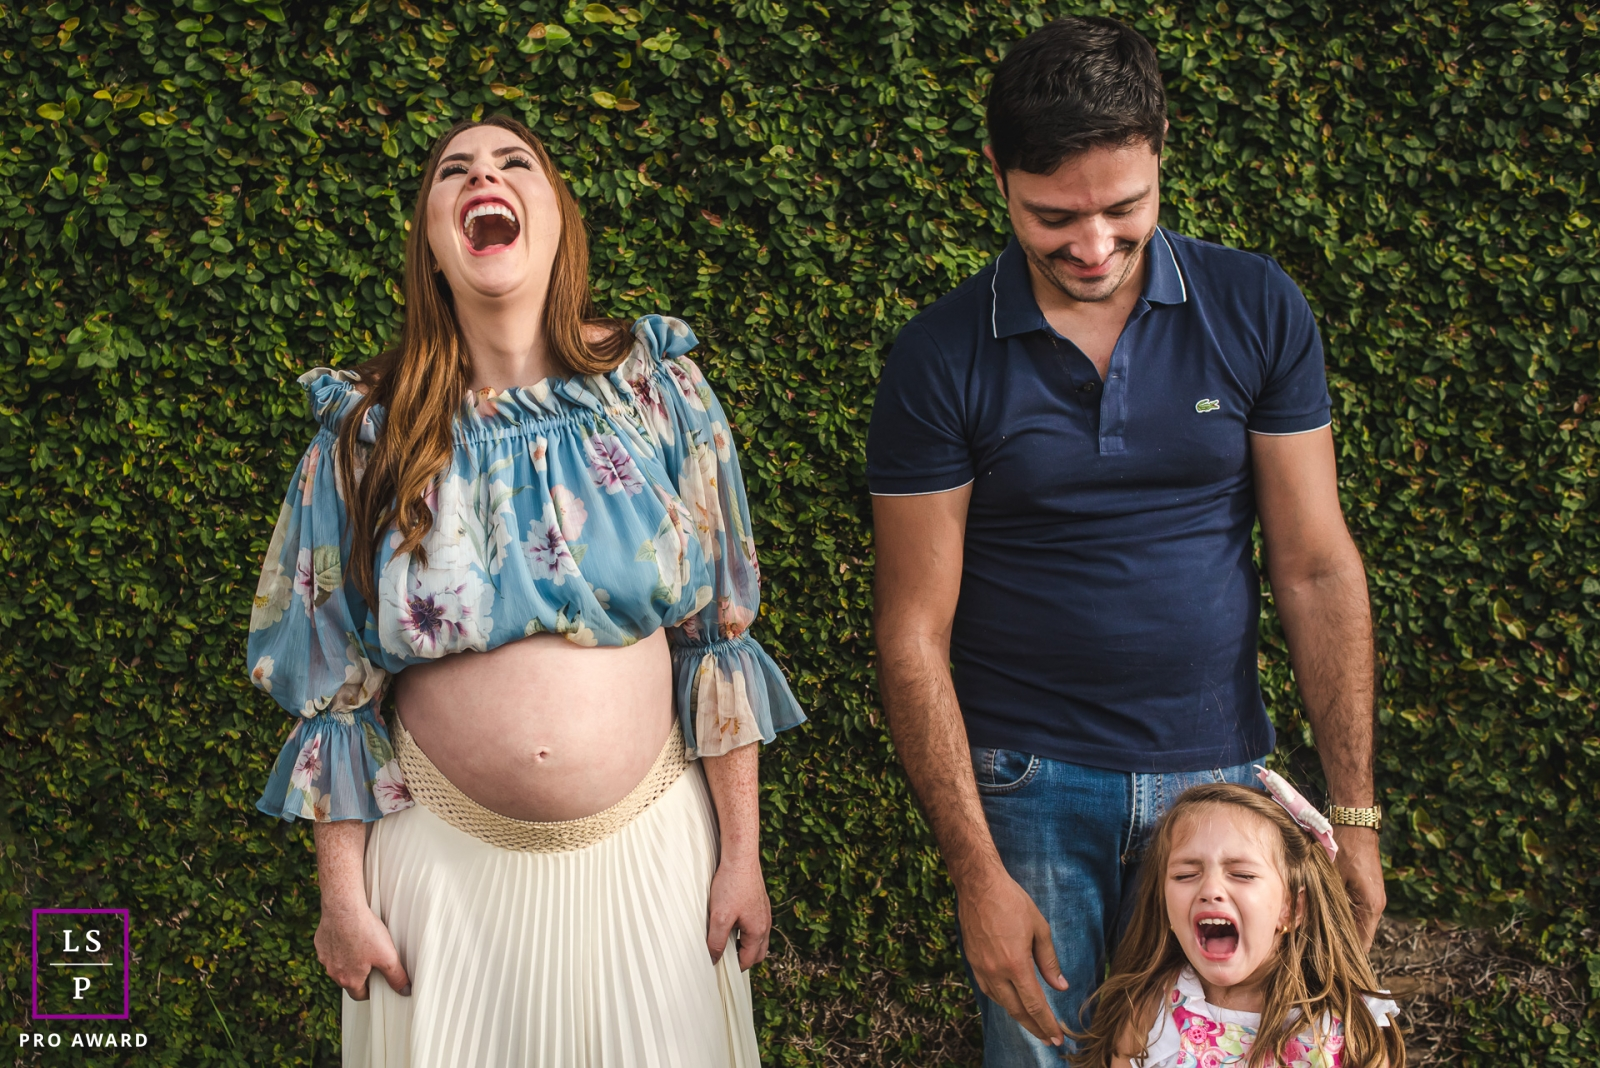 Campo Grande Lifestyle Family Photographer created this artistic portrait with the showing of some Jealous